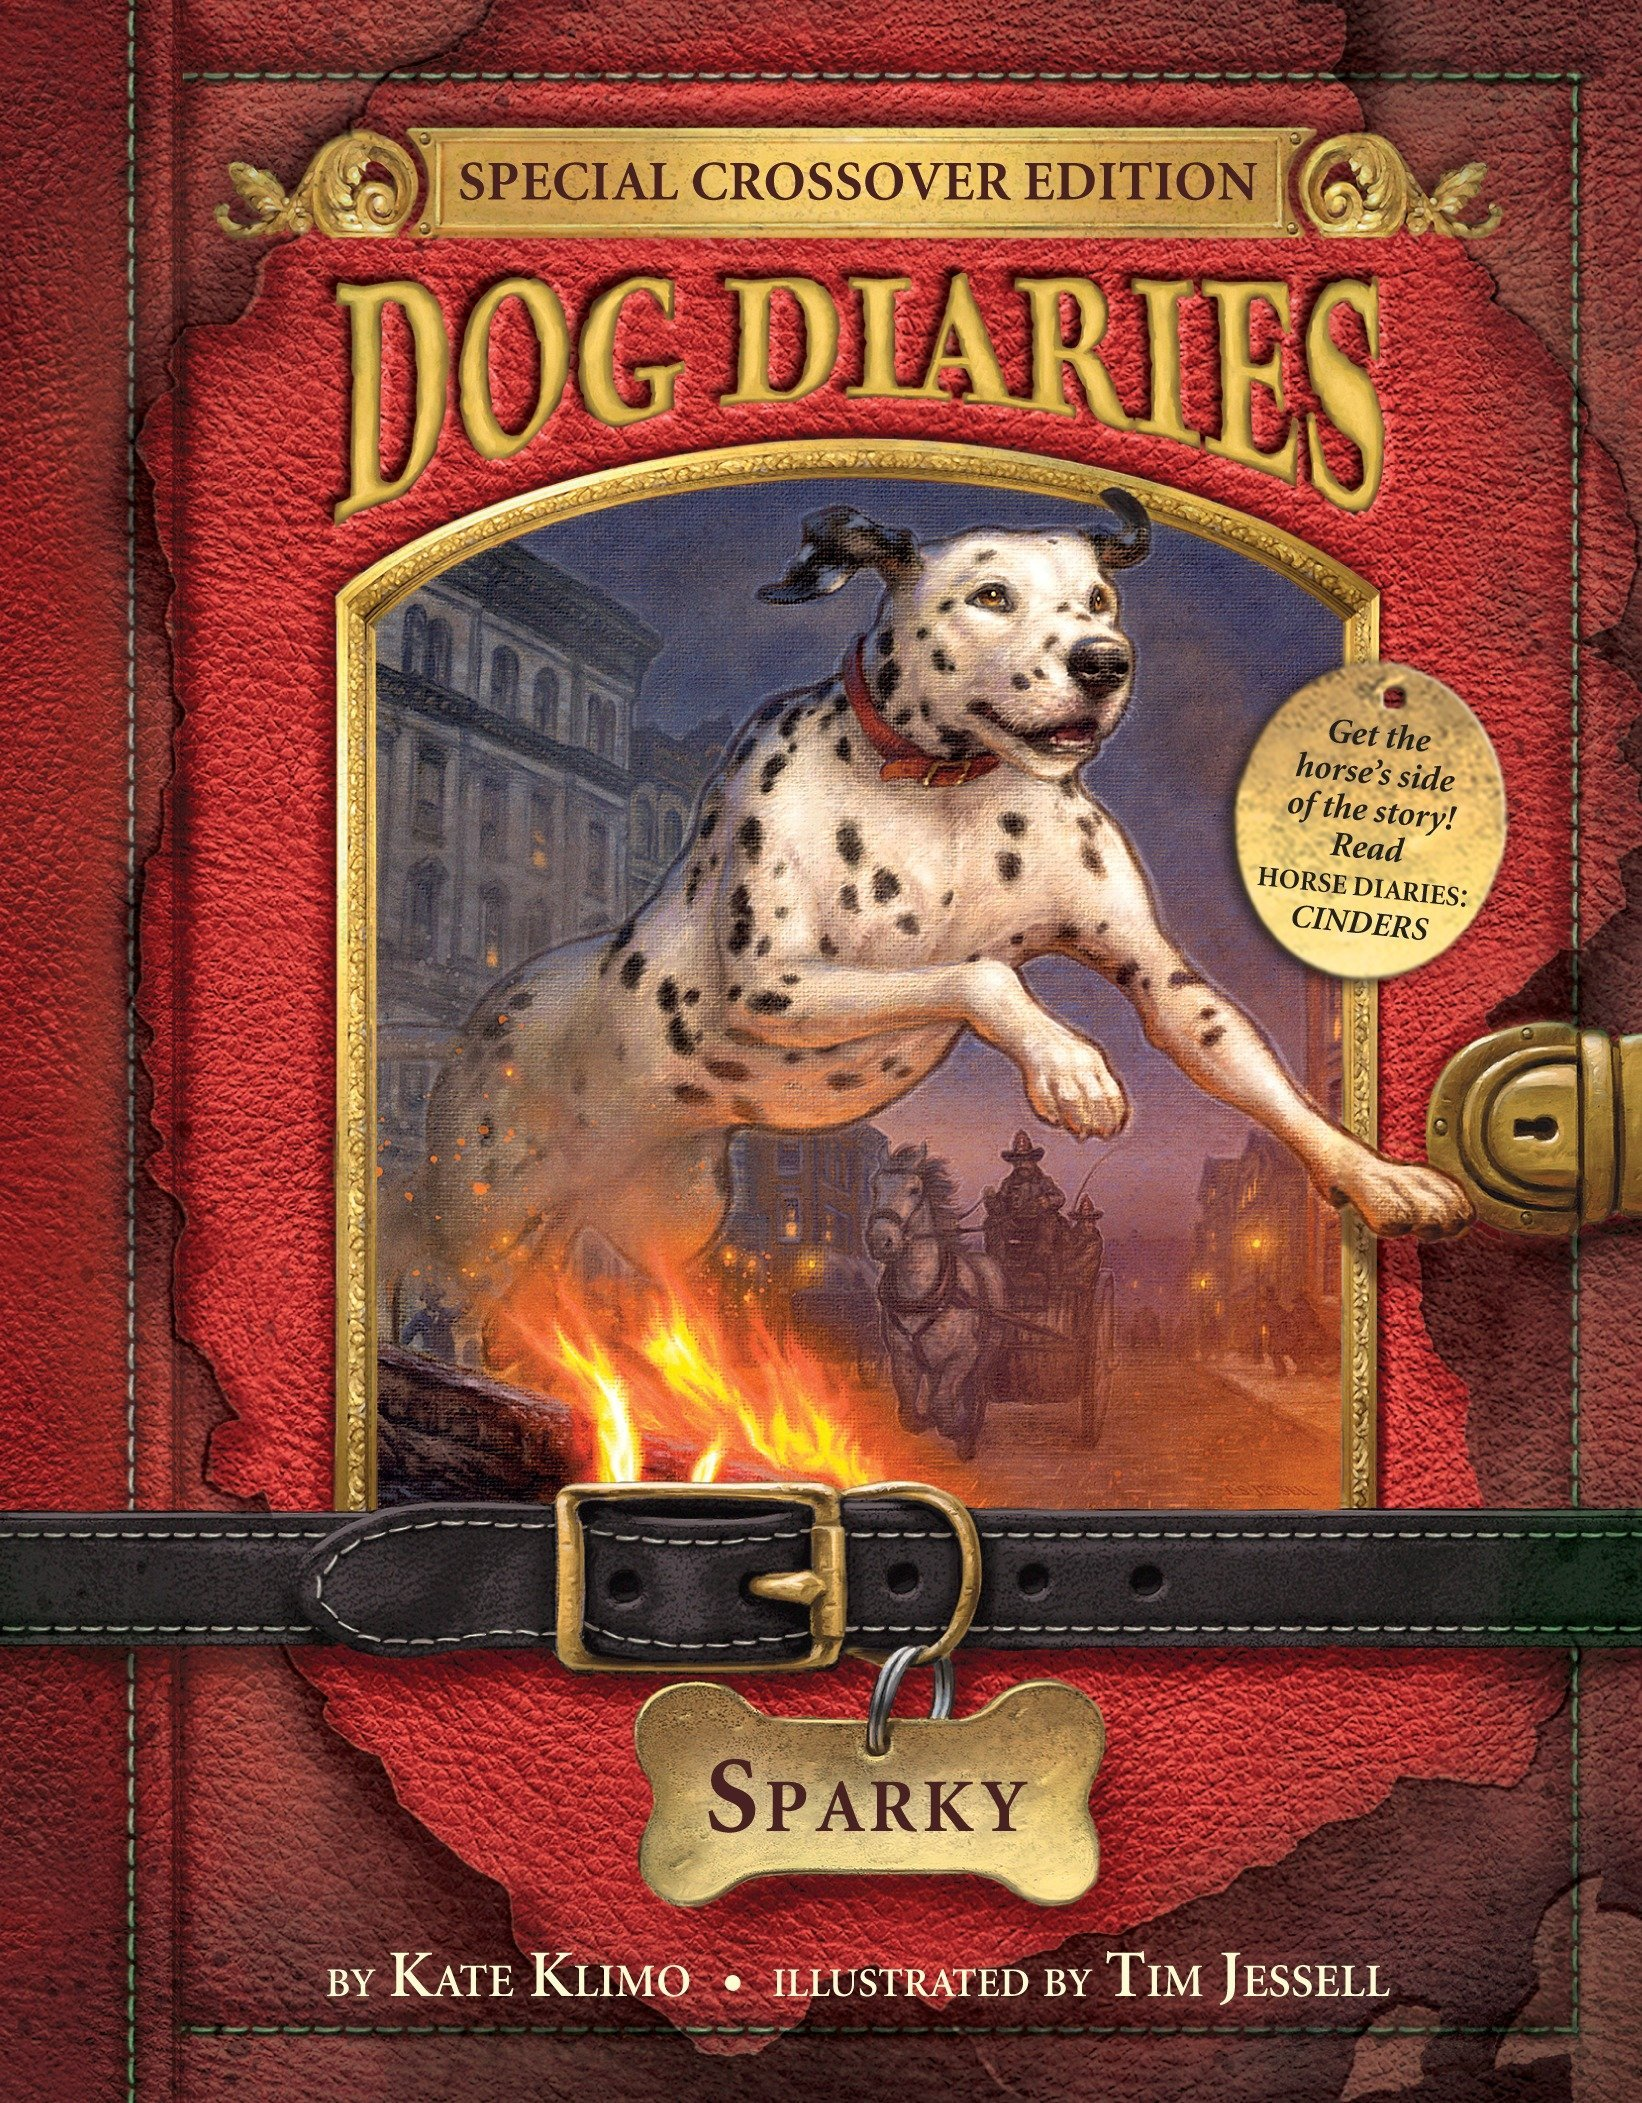 Dog Diaries #9: Sparky (Dog Diaries Special Edition) pdf epub